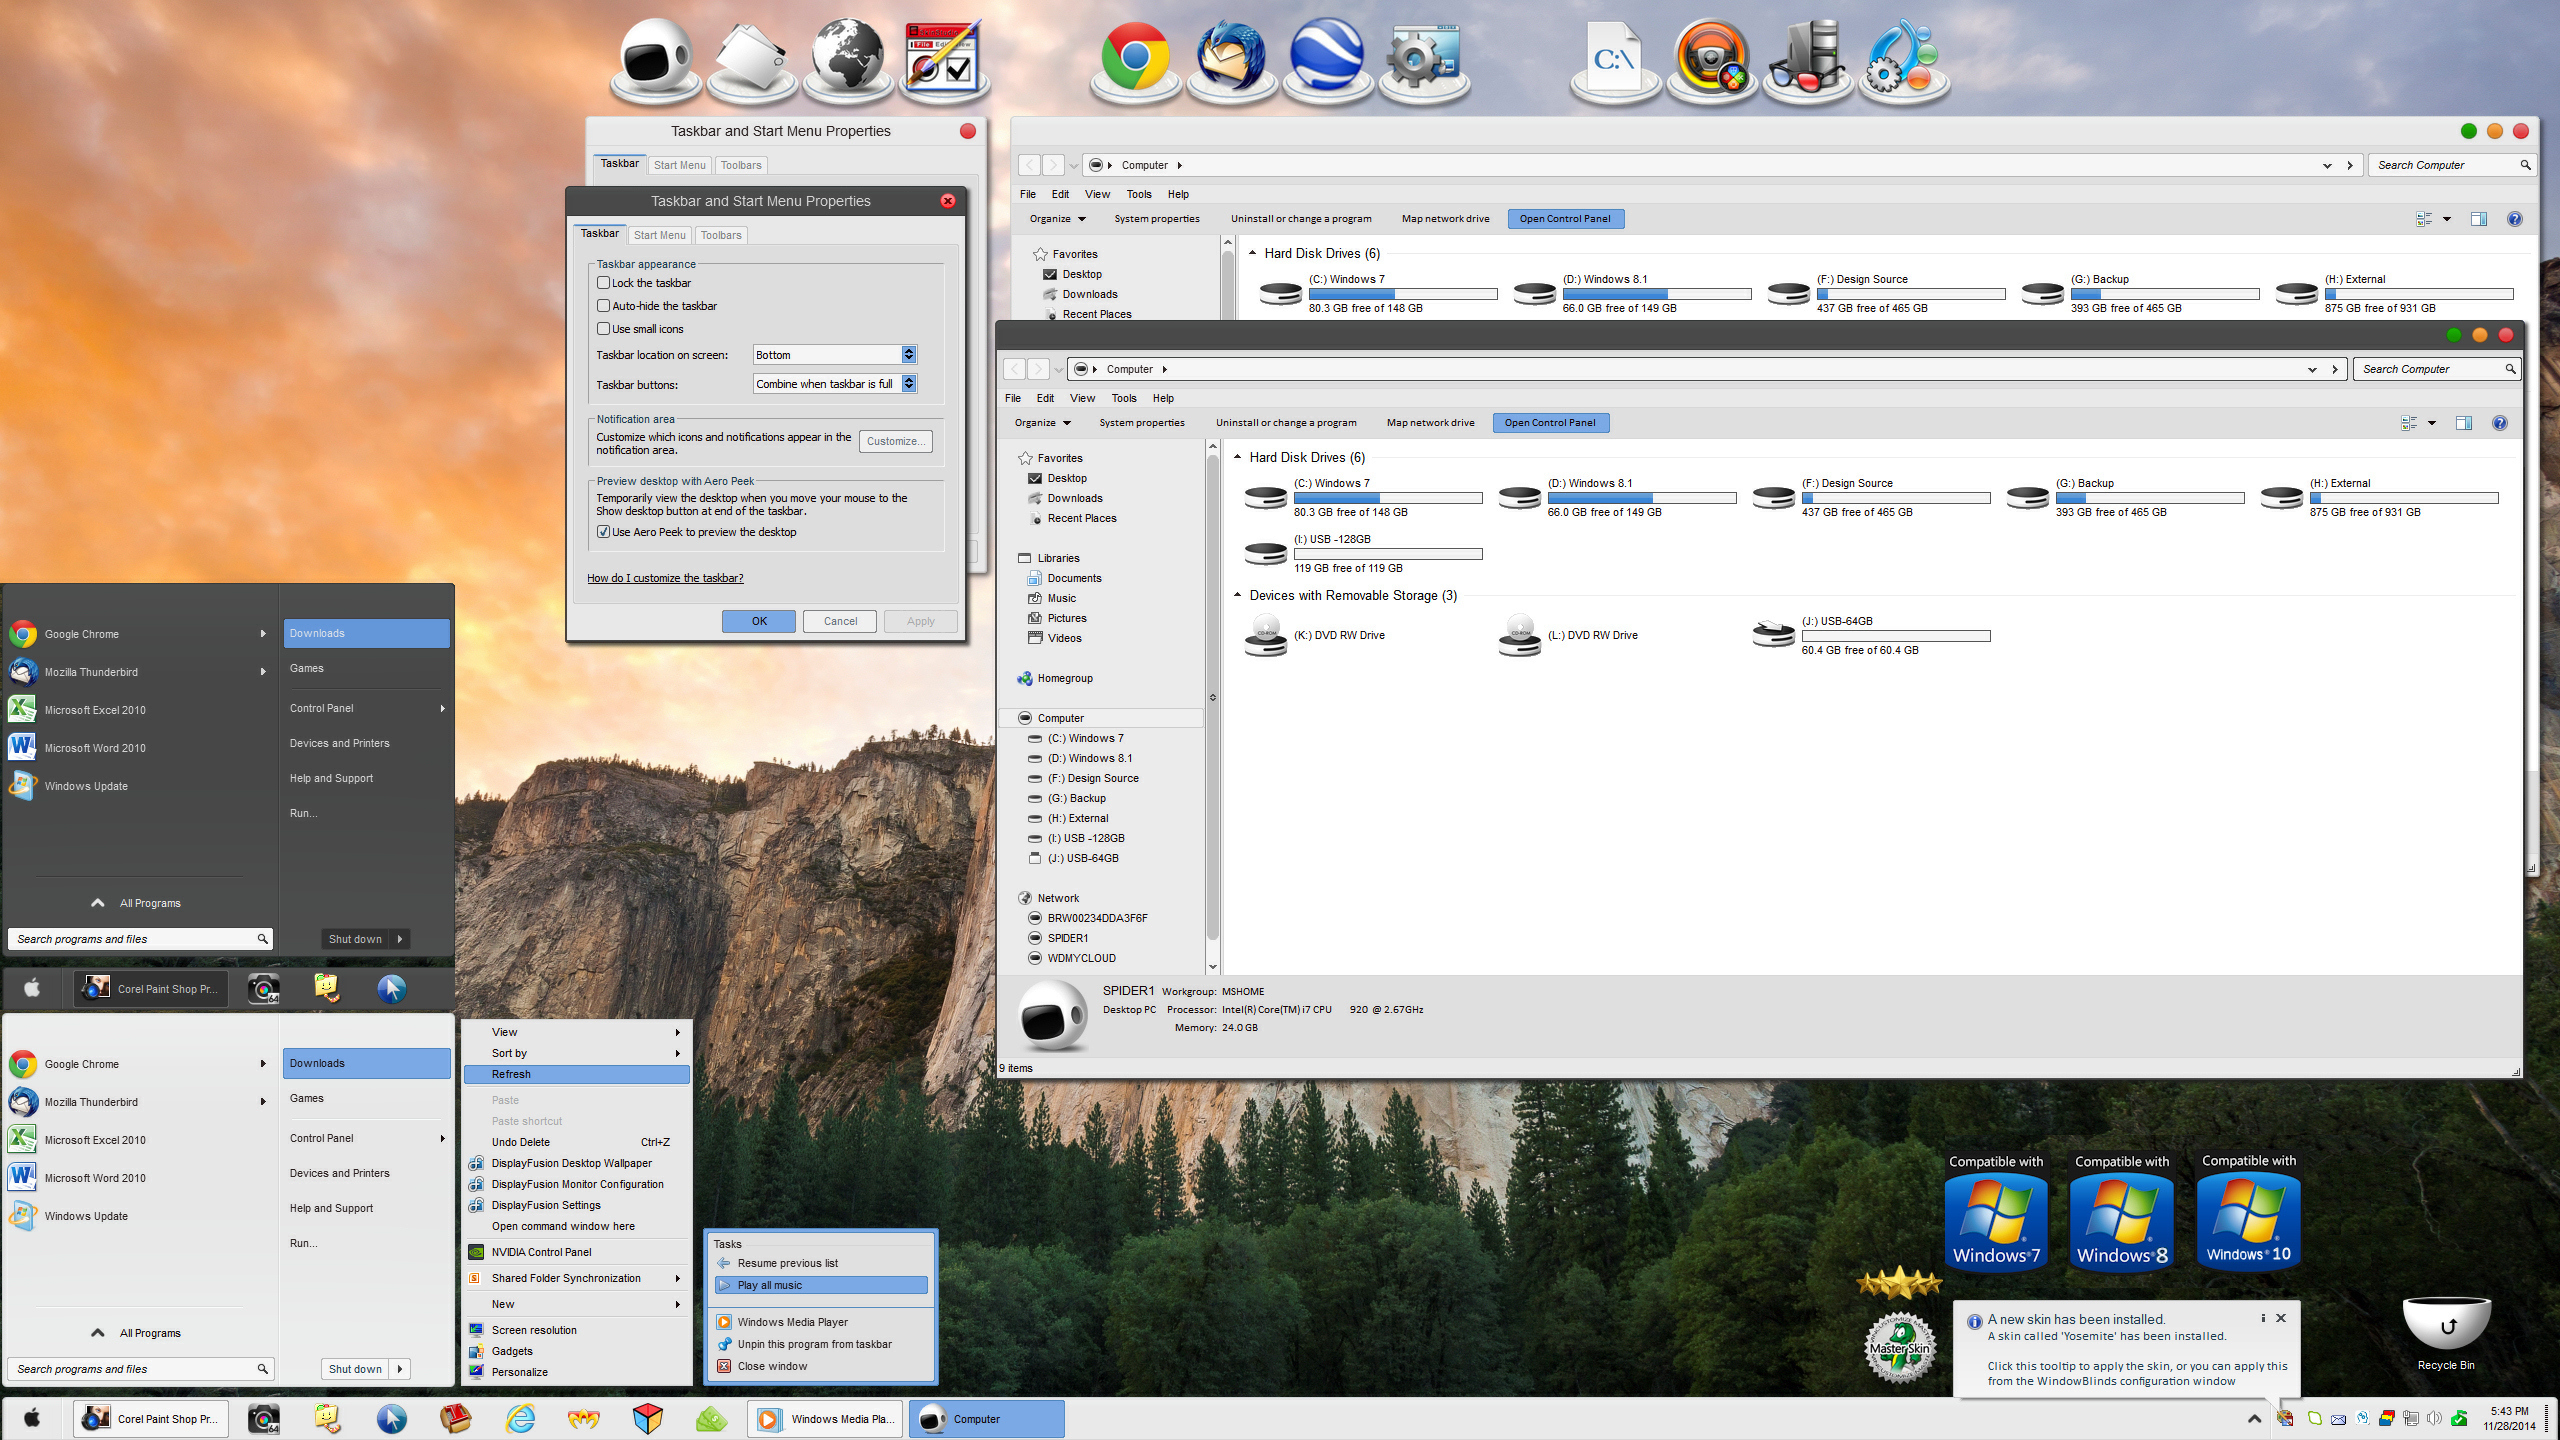 Yosemite for Windowblinds